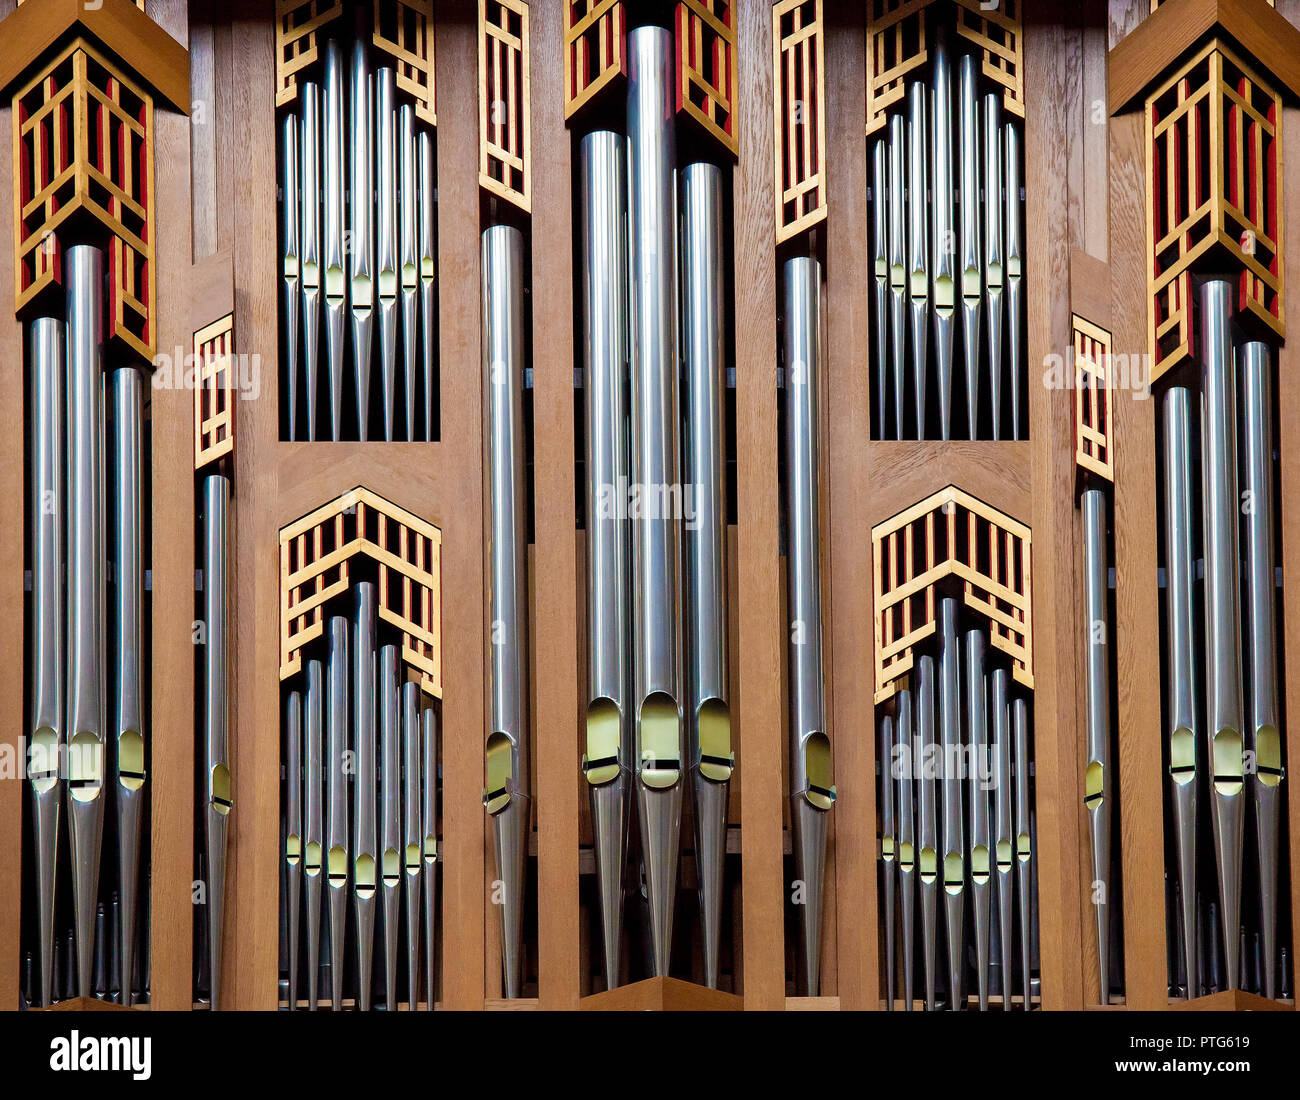 Organ pipes of the great organ in the Cathedral of Brussels, Belgium - Stock Image